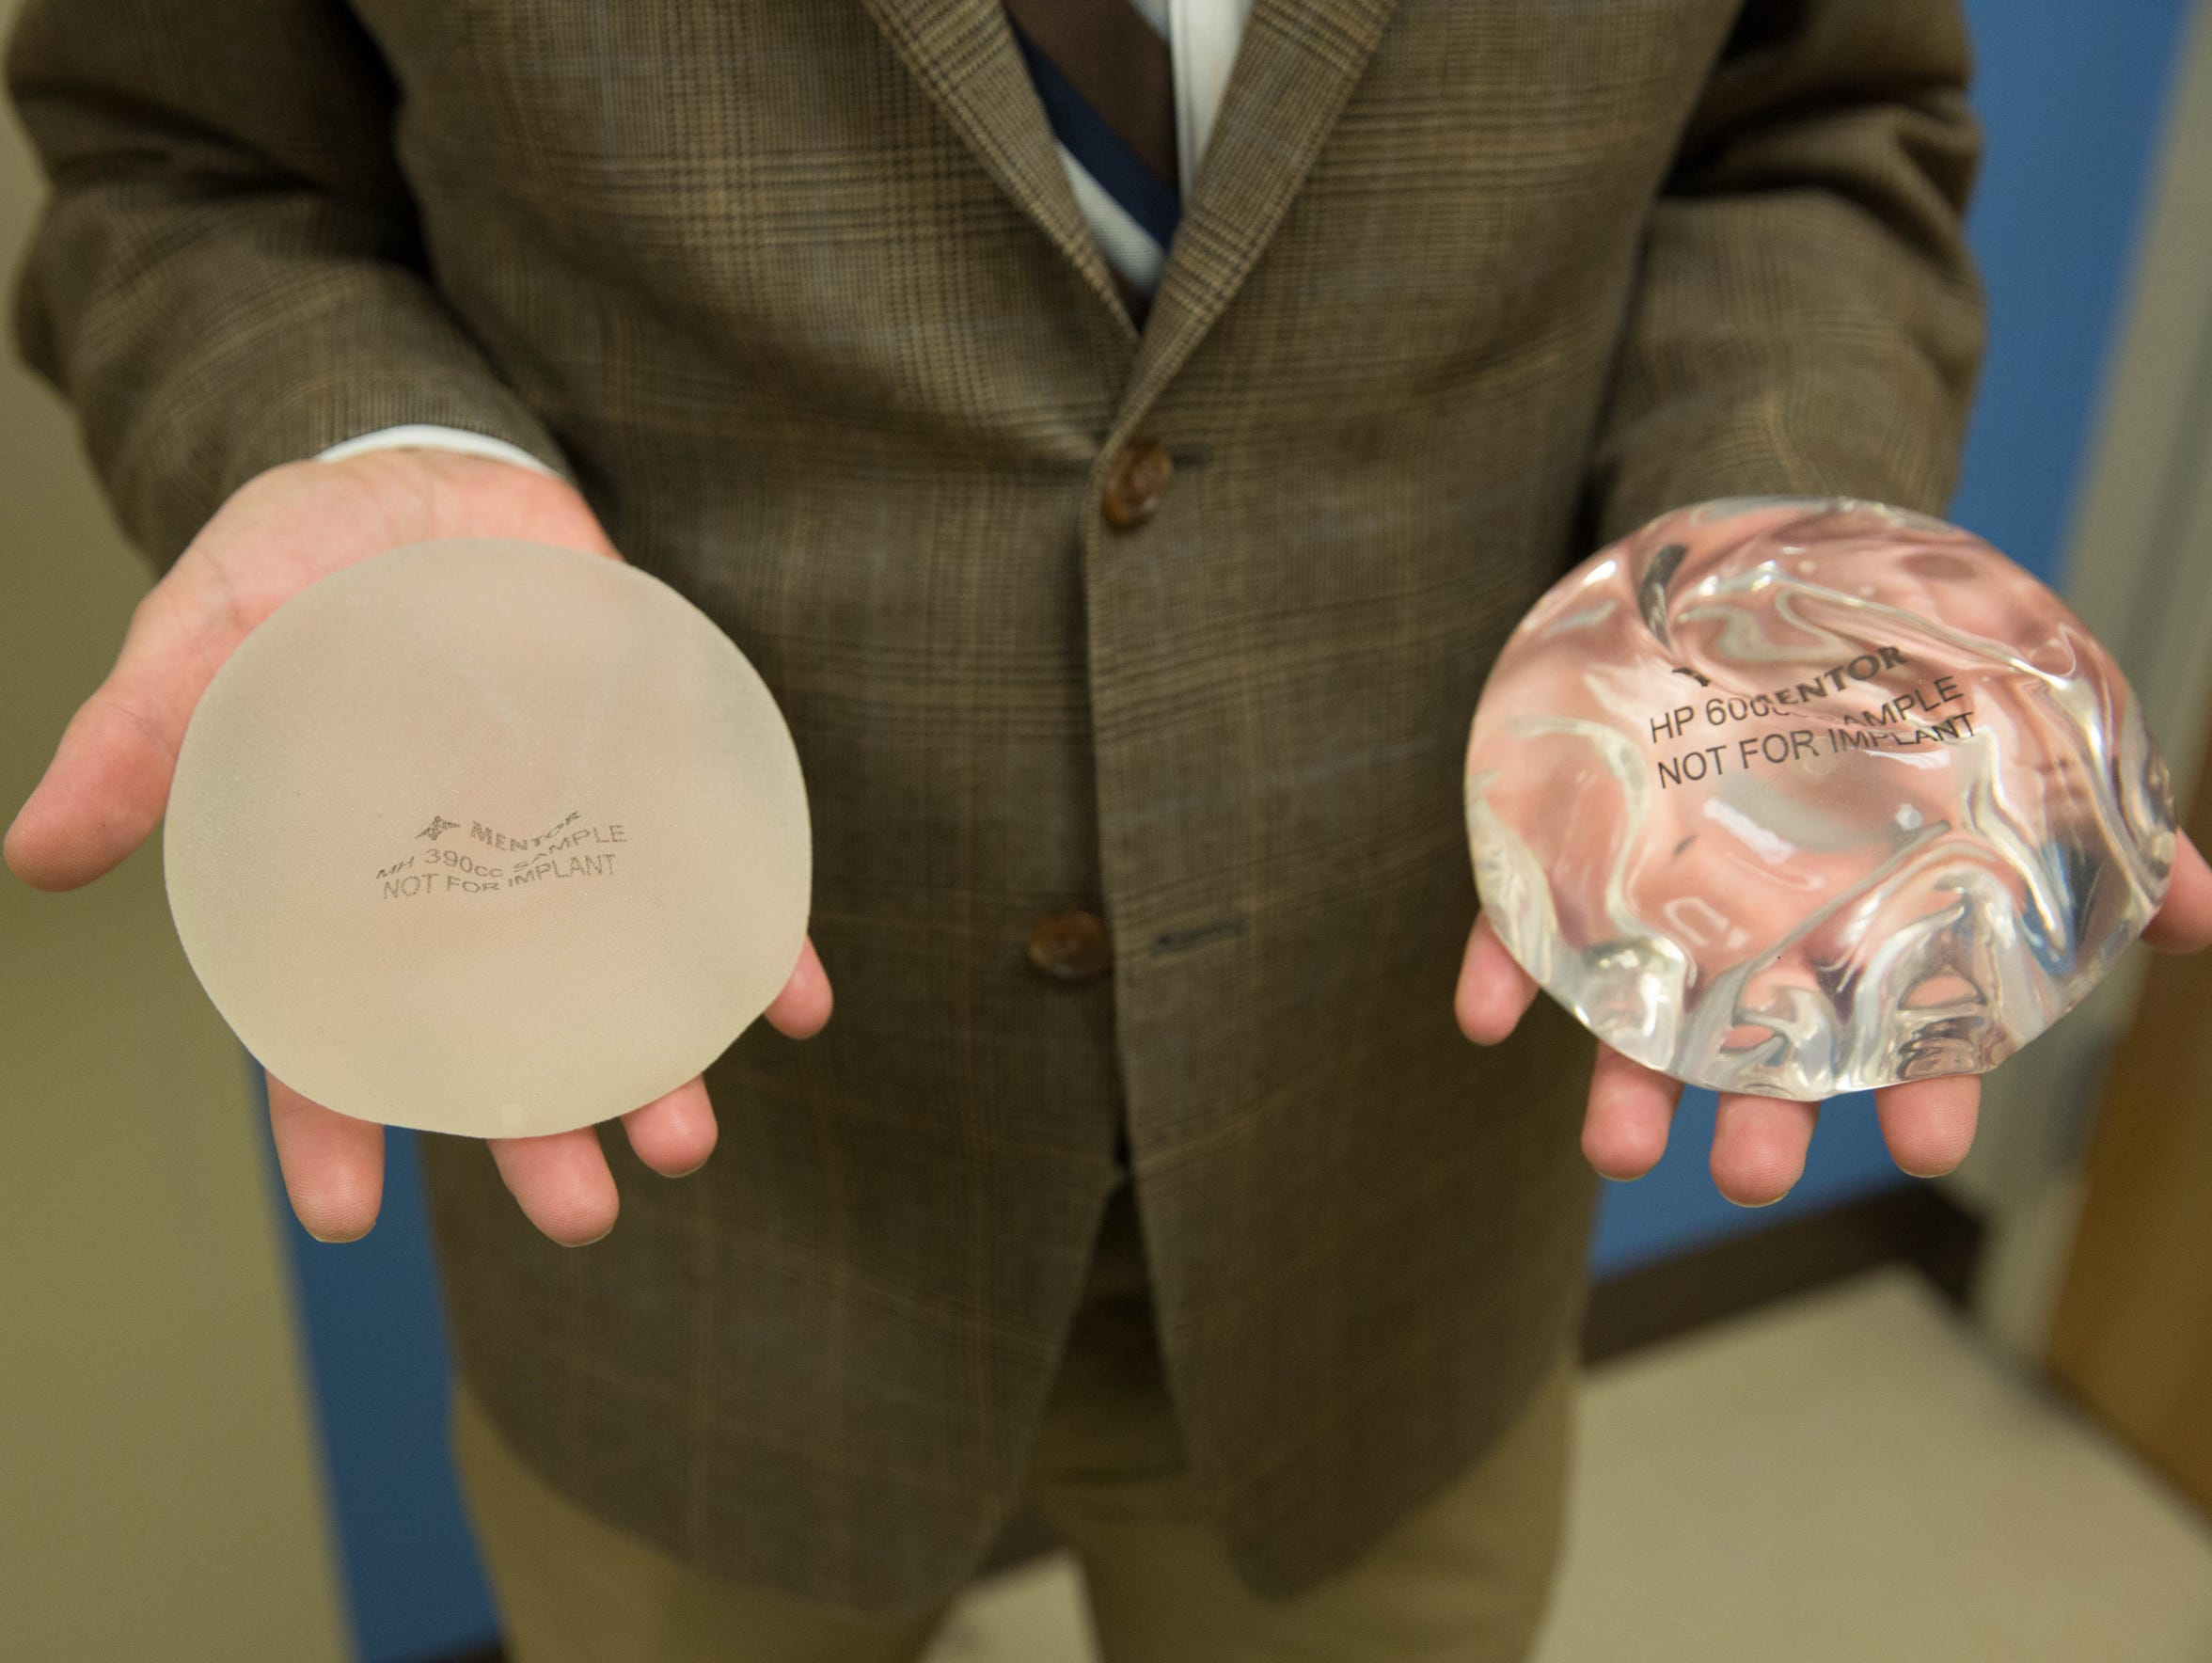 Dr. Paul Phillips holds two different types of breast